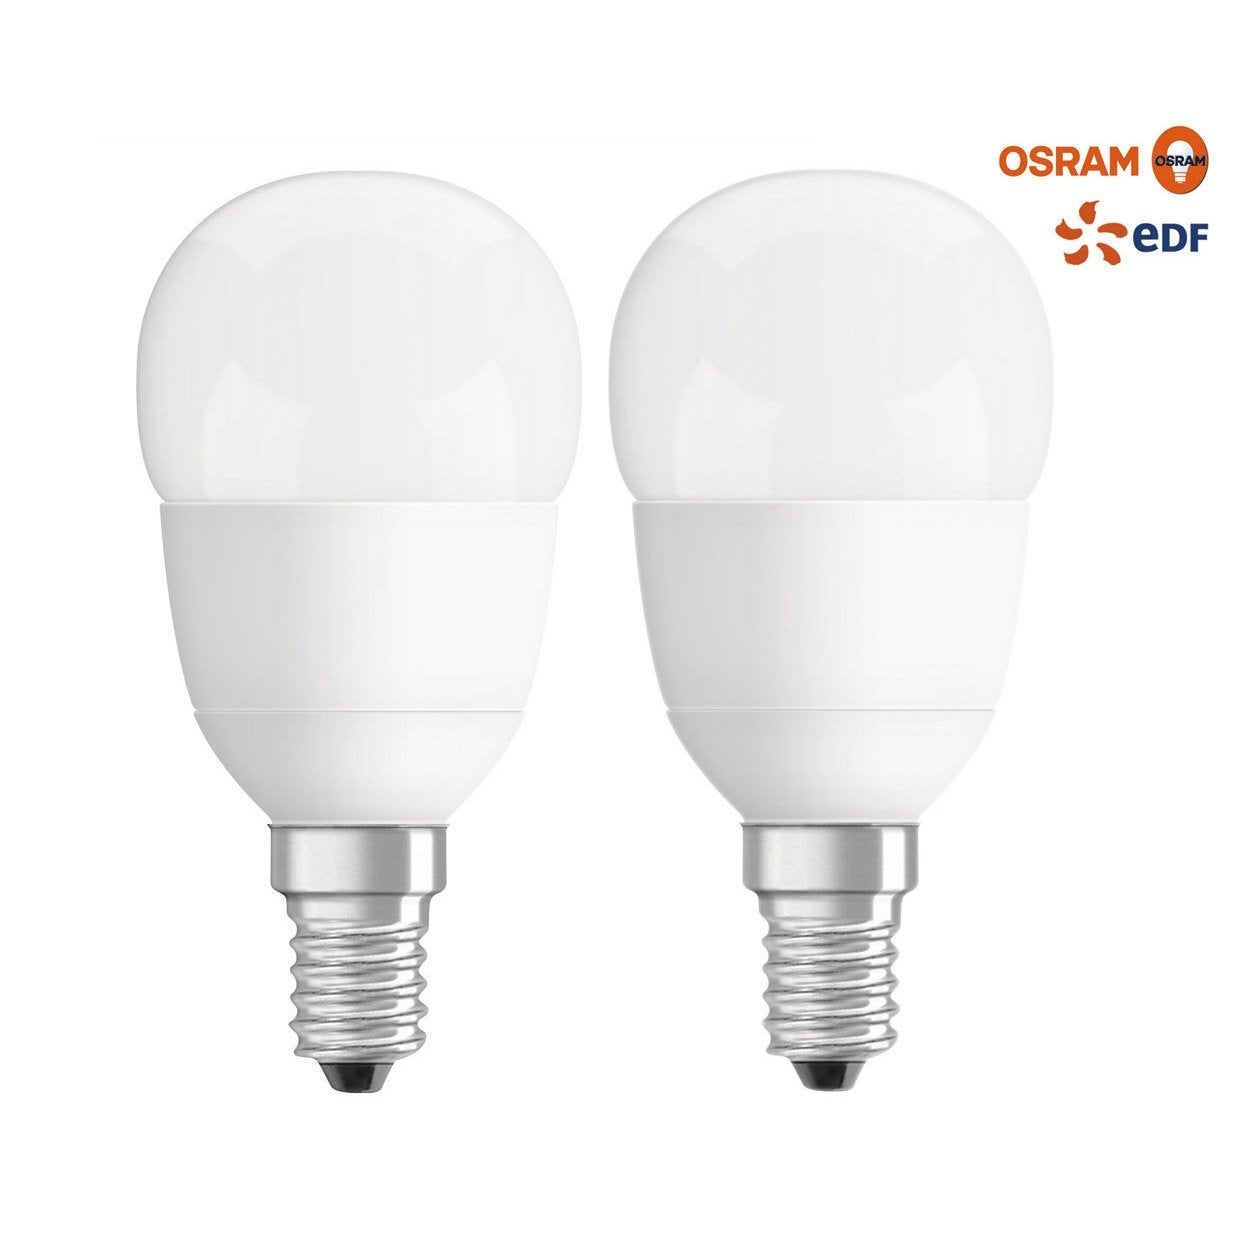 ampoule sph rique led 40w osram e14 lumi re chaude env 2700k leroy merlin. Black Bedroom Furniture Sets. Home Design Ideas